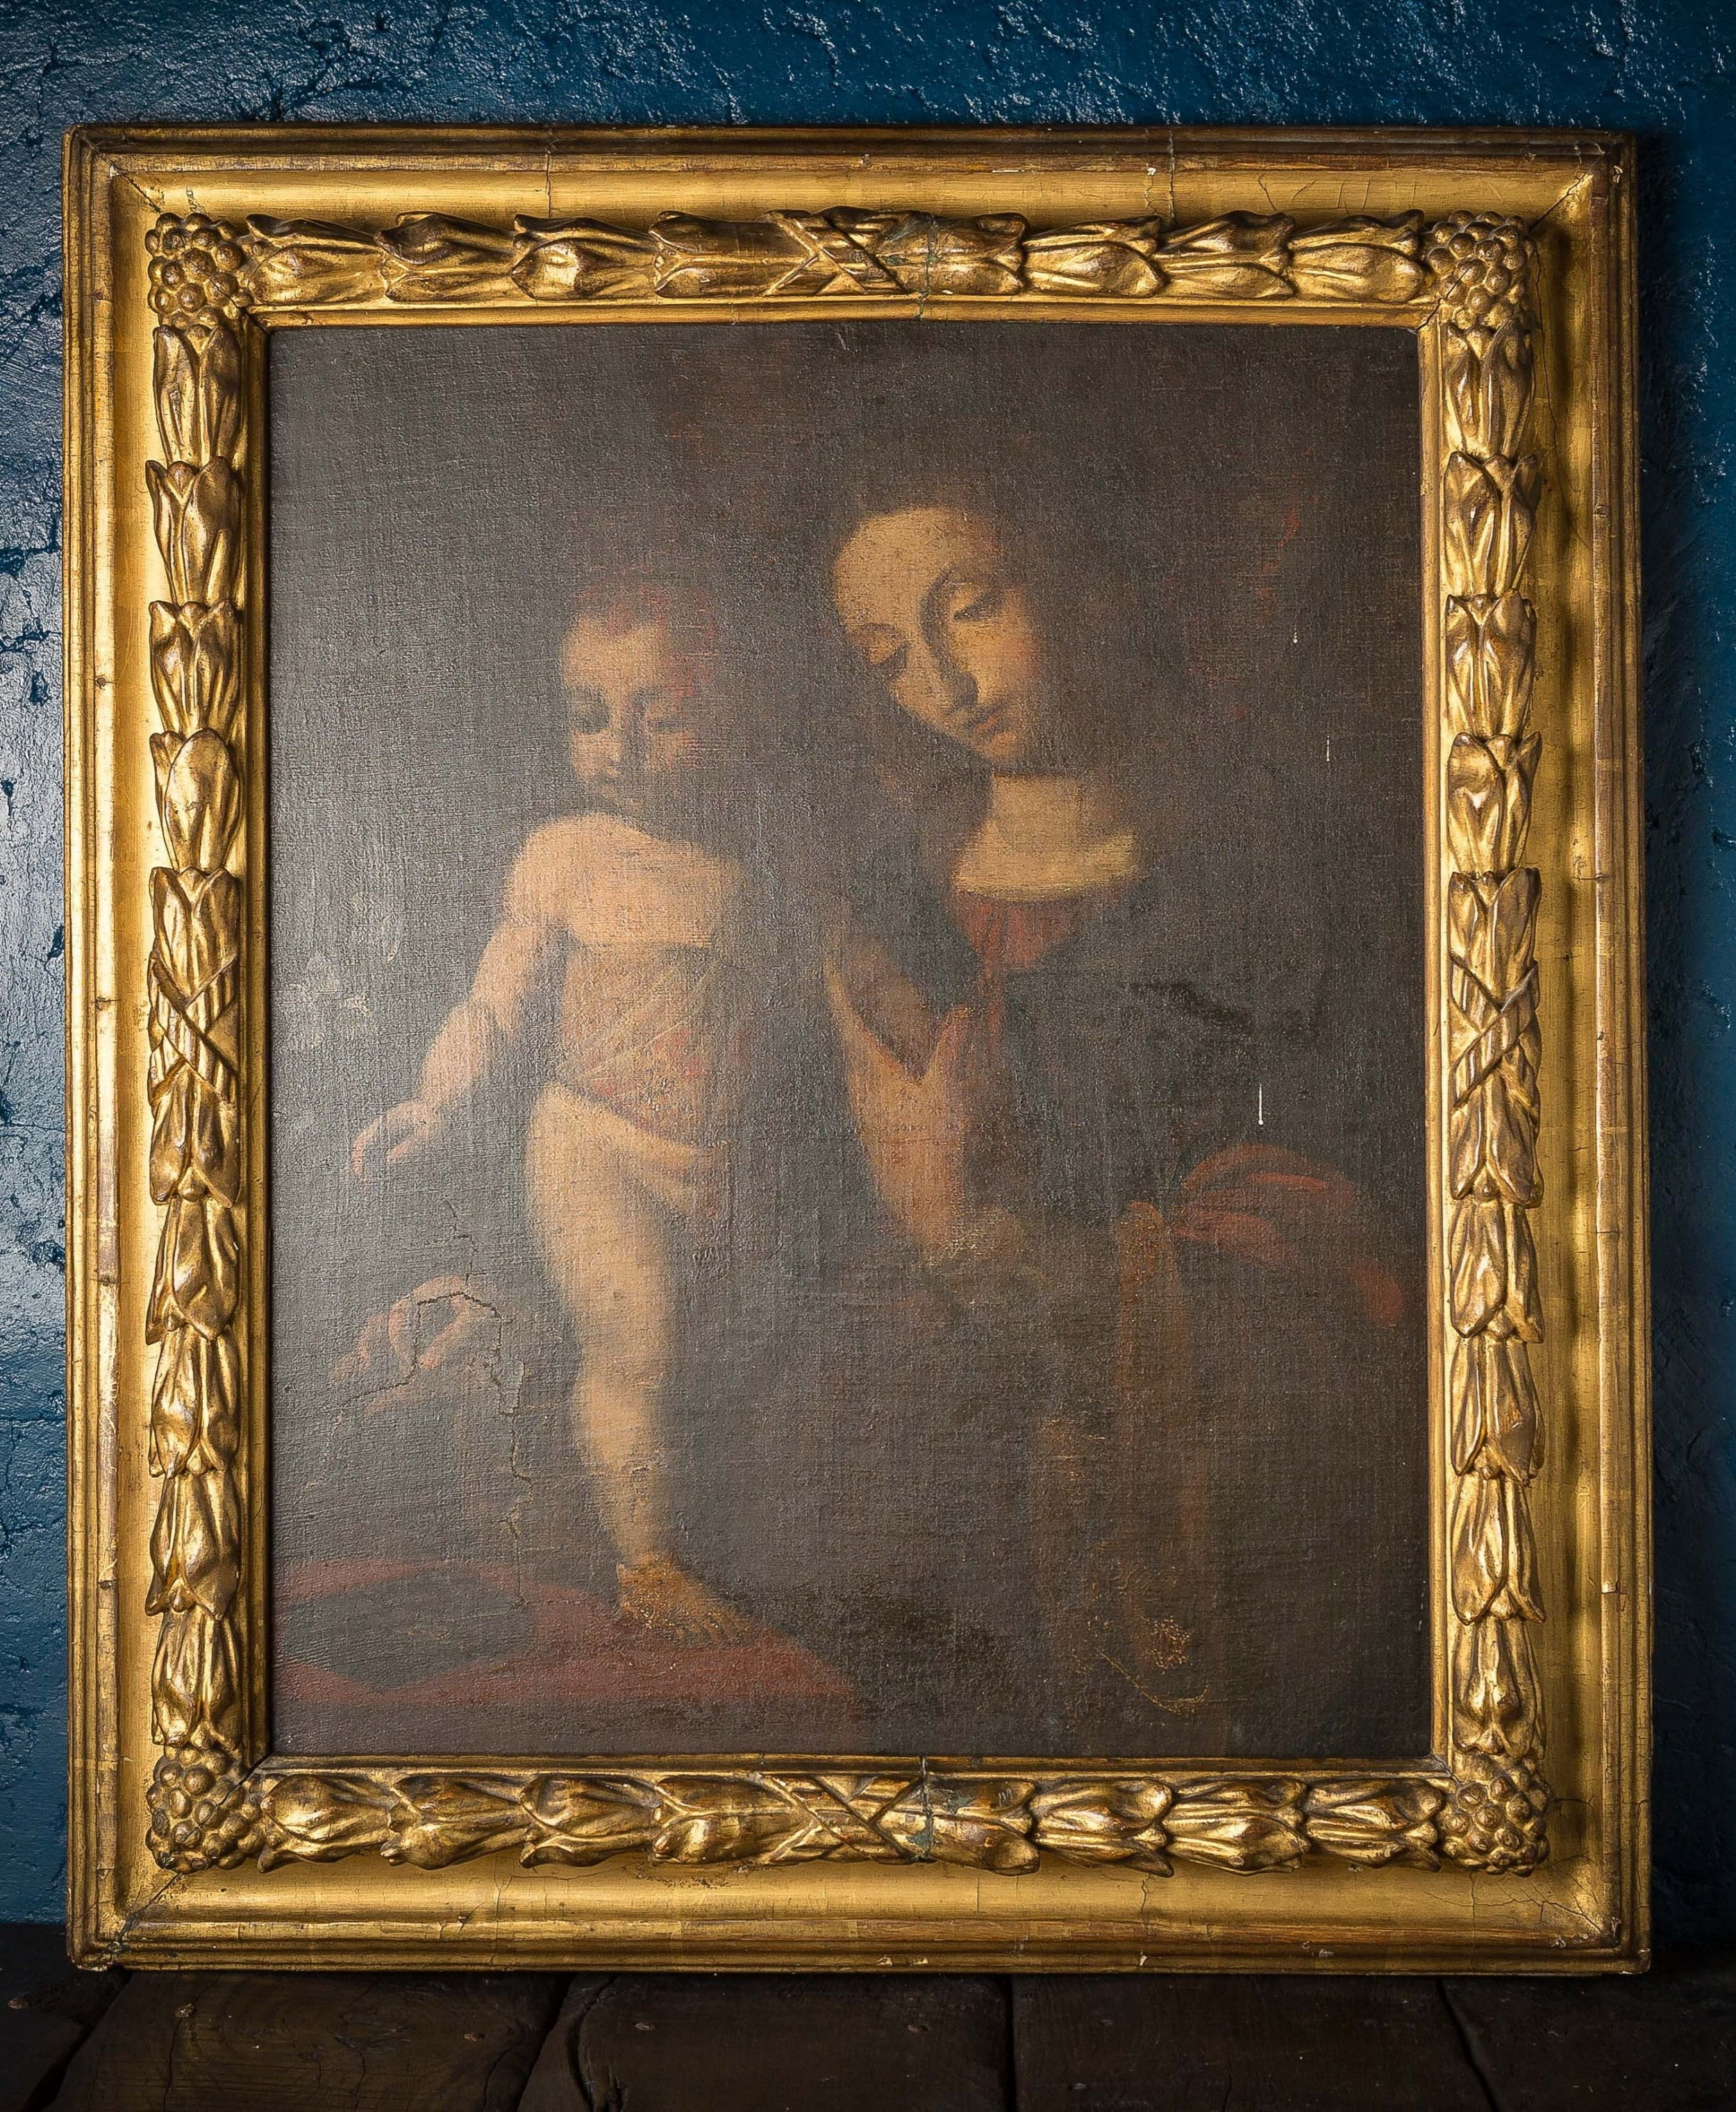 the madonna and child after bernardino luini 16th c oil on canvas in later 18th c frame